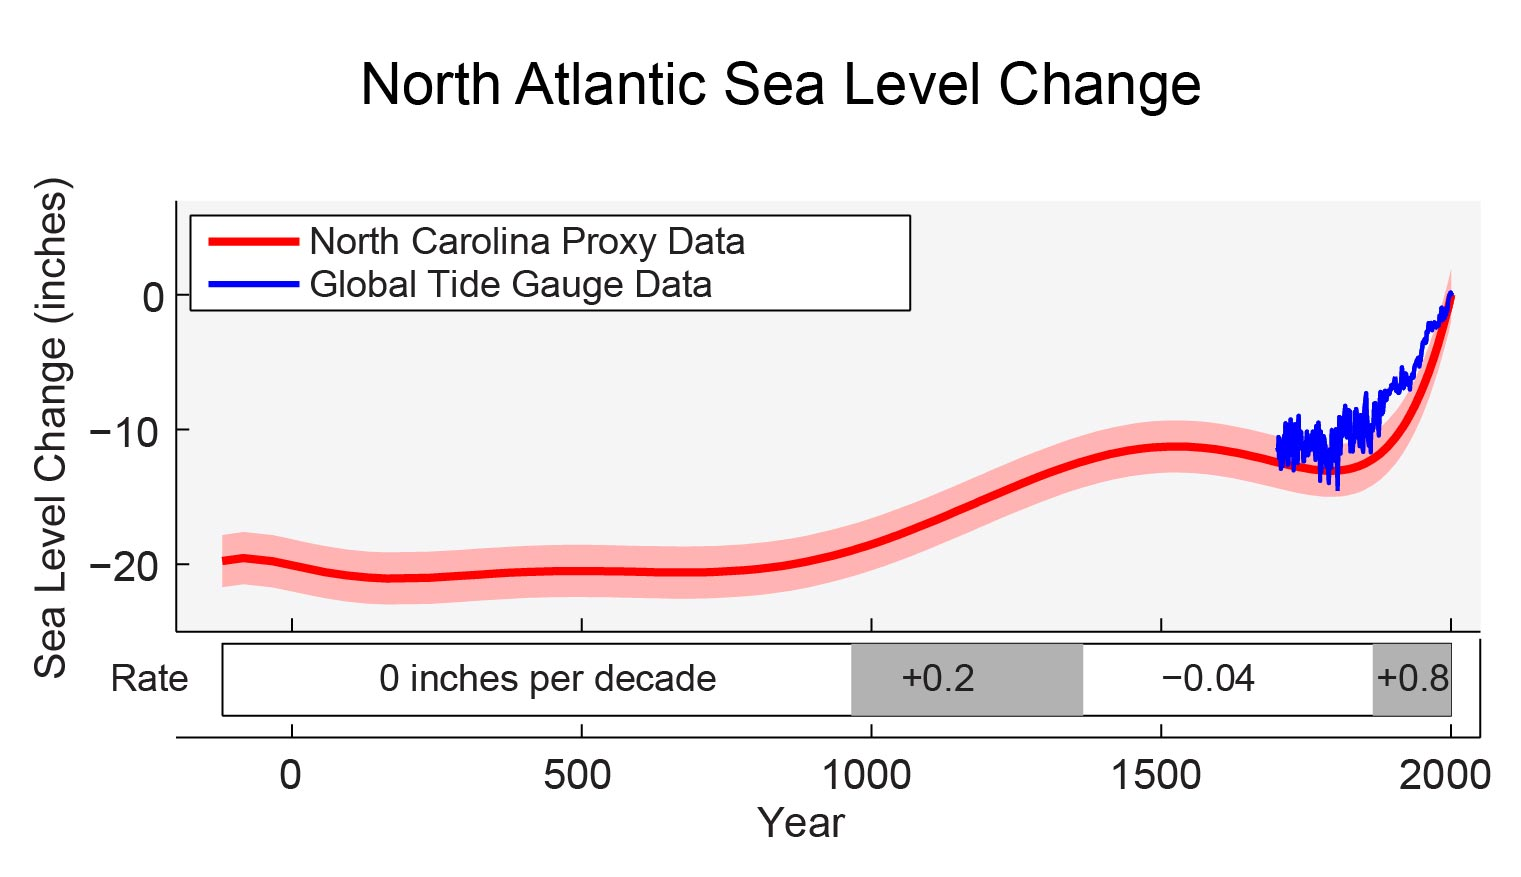 North Atlantic Sea Level Change